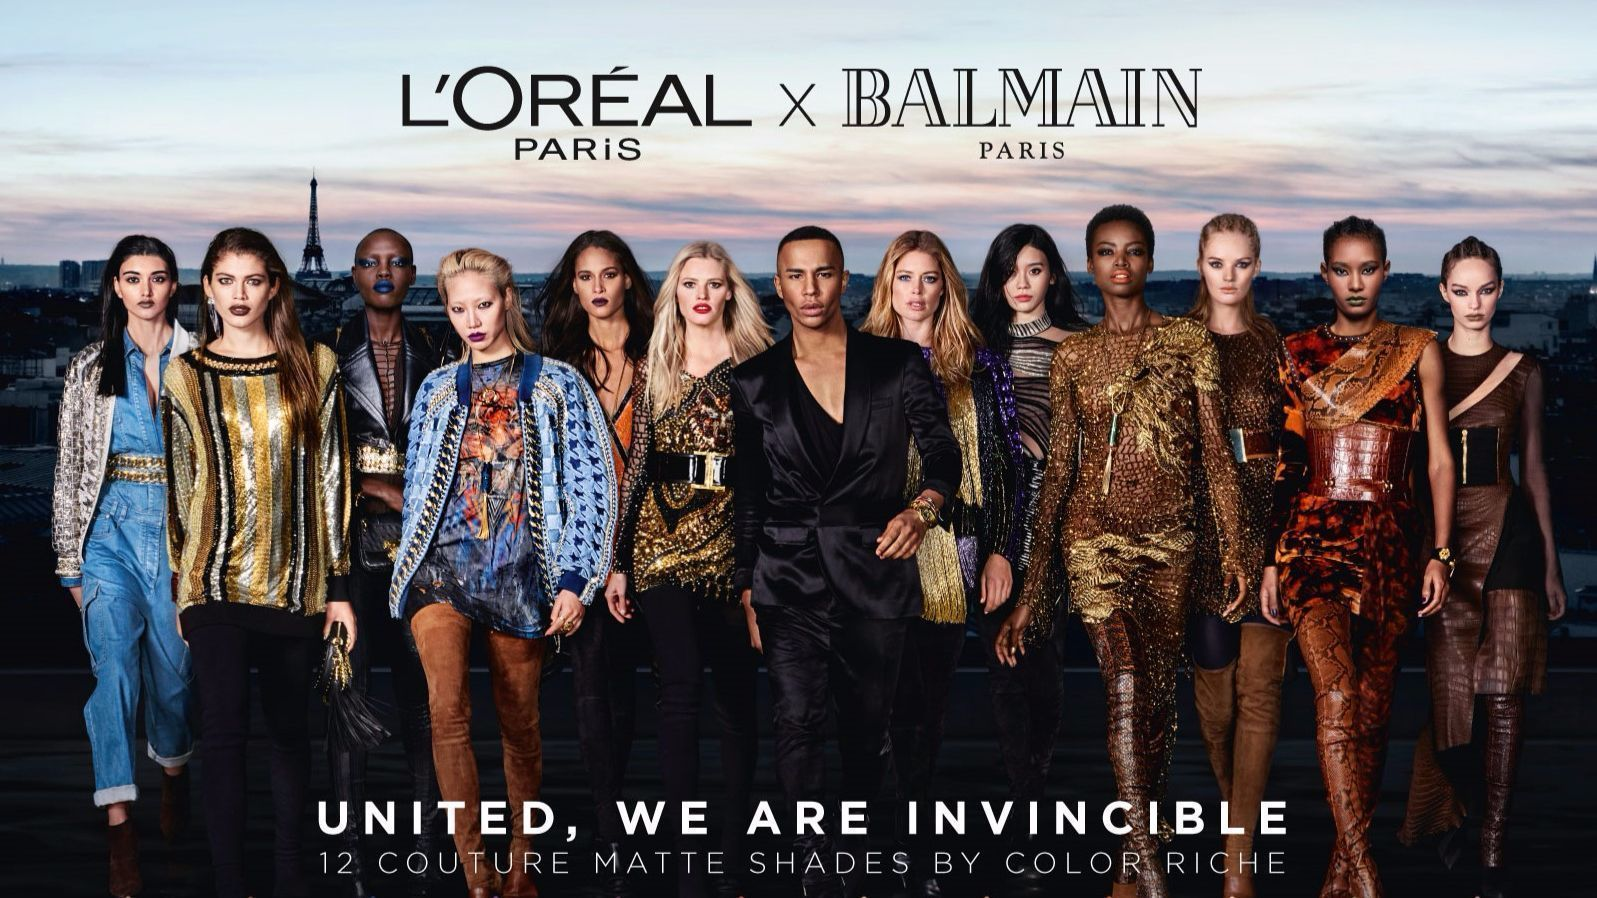 French kisses: L'Oréal, Balmain unveil ad campaign for collaborative lipstick collection